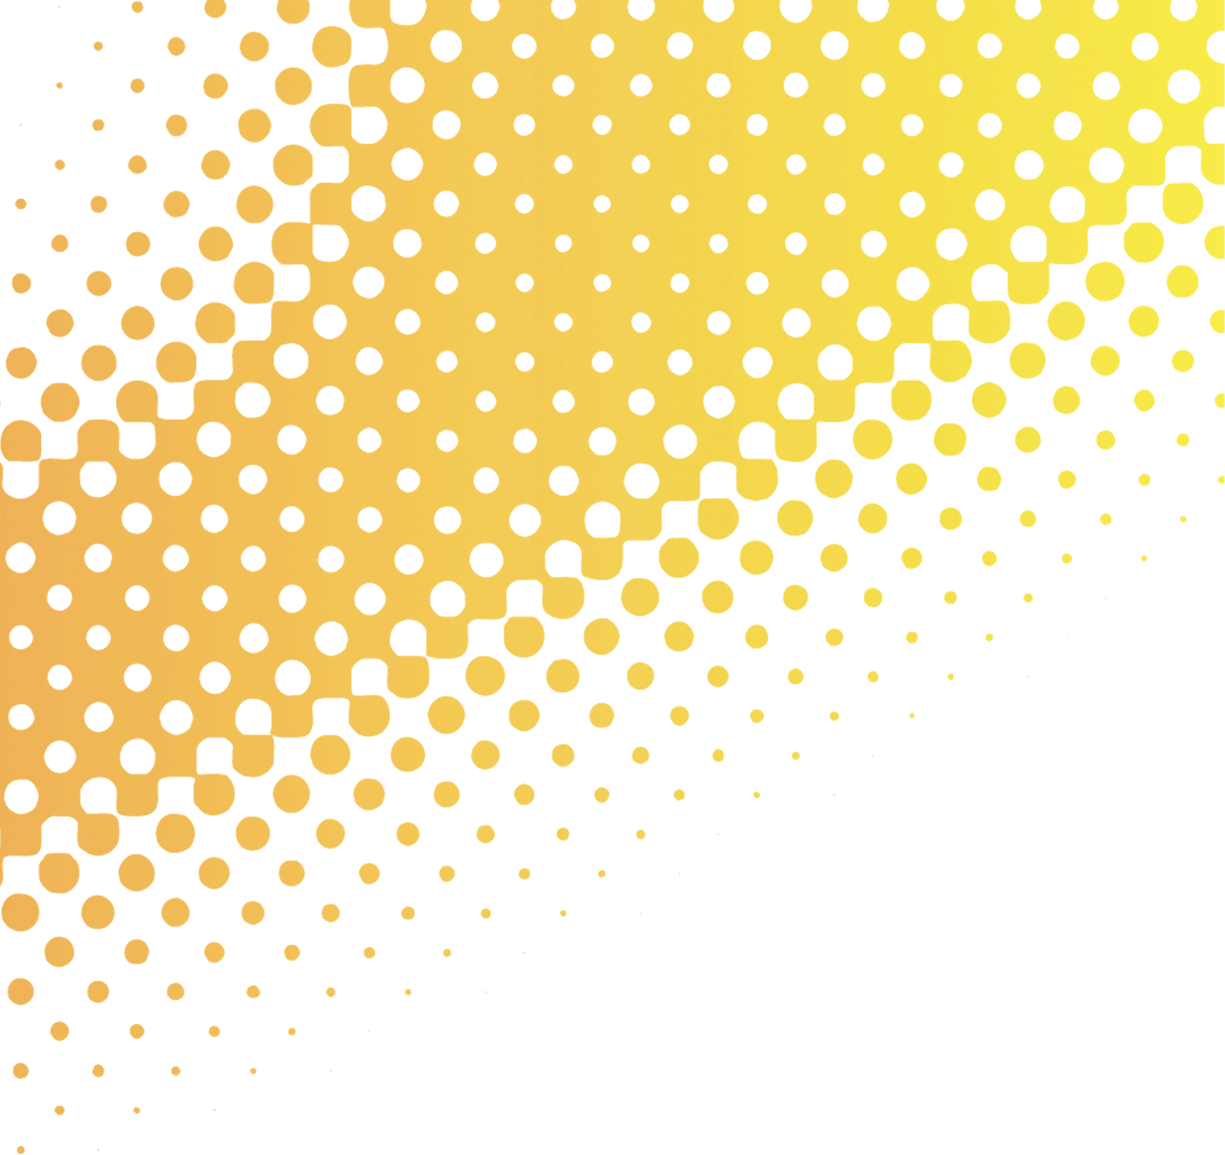 Dot background png. Textile printing halftone yellow